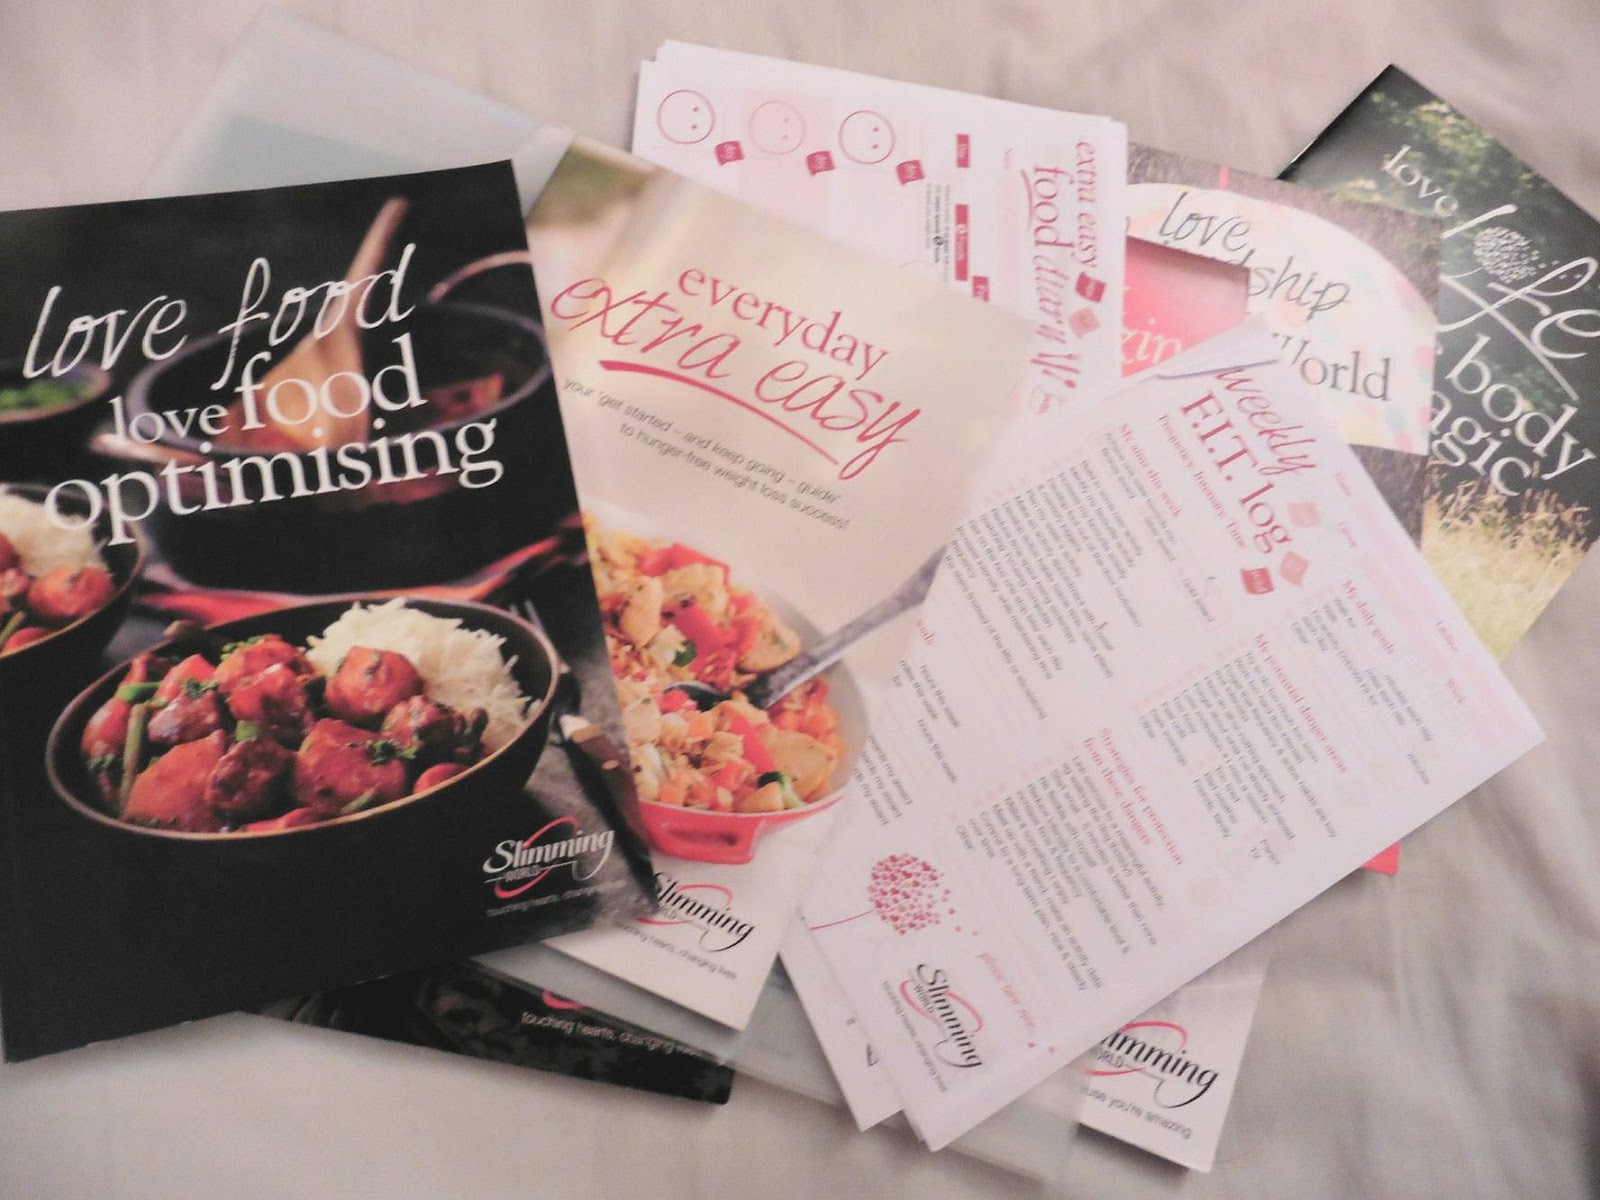 lebellelavie - My First Week at Slimming World